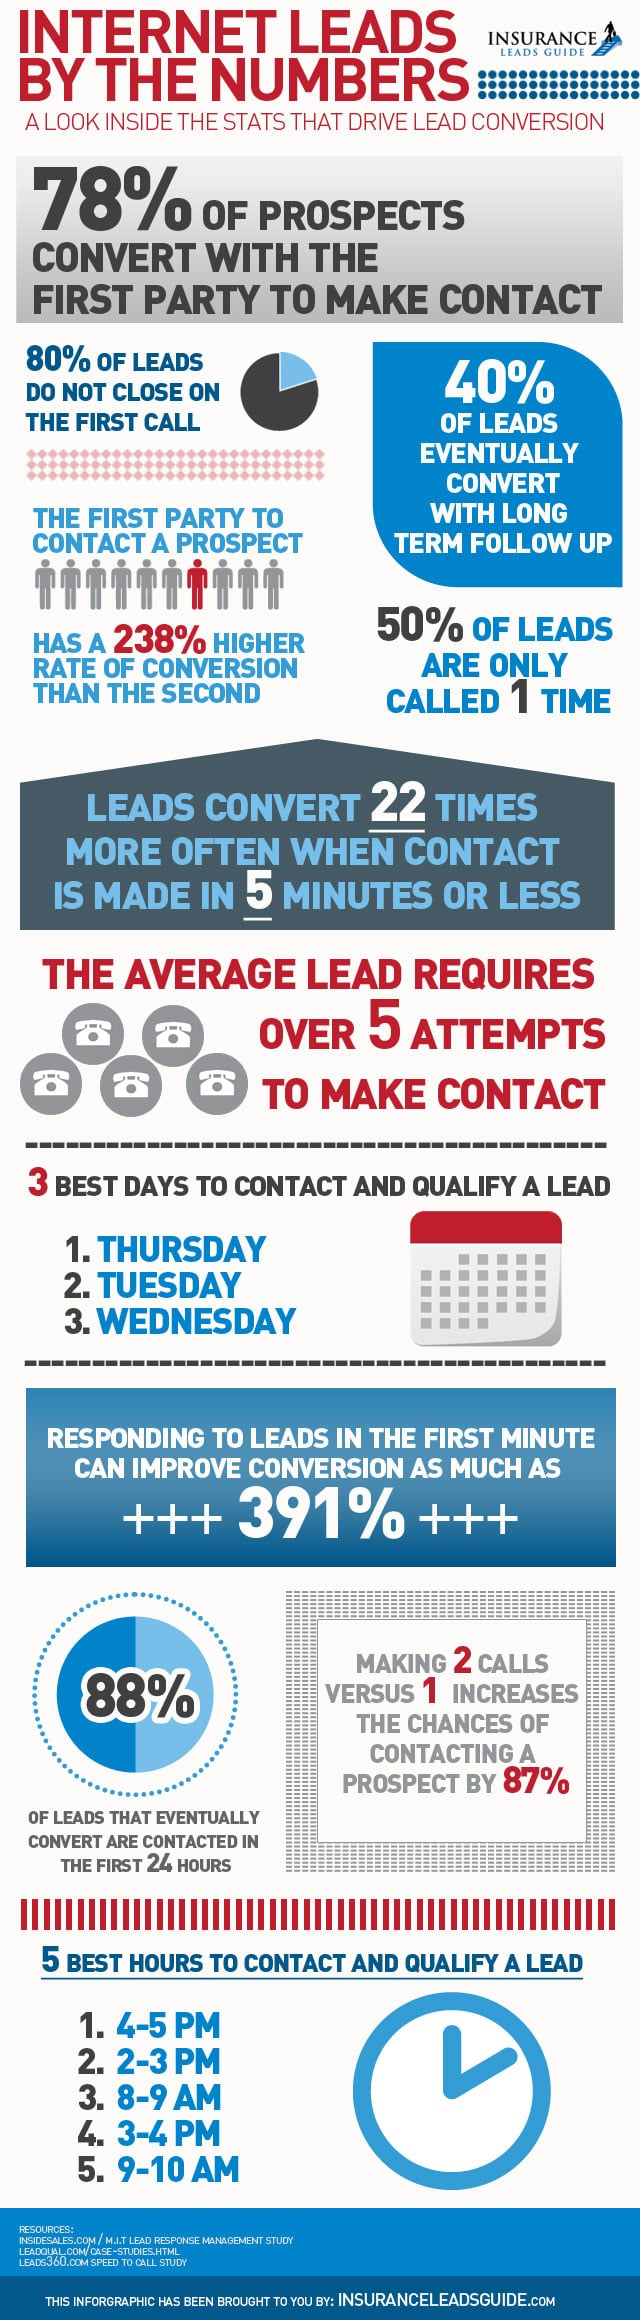 Internet Leads By The Numbers [INFOGRAPHIC] - An Infographic from Insurance Leads Guide